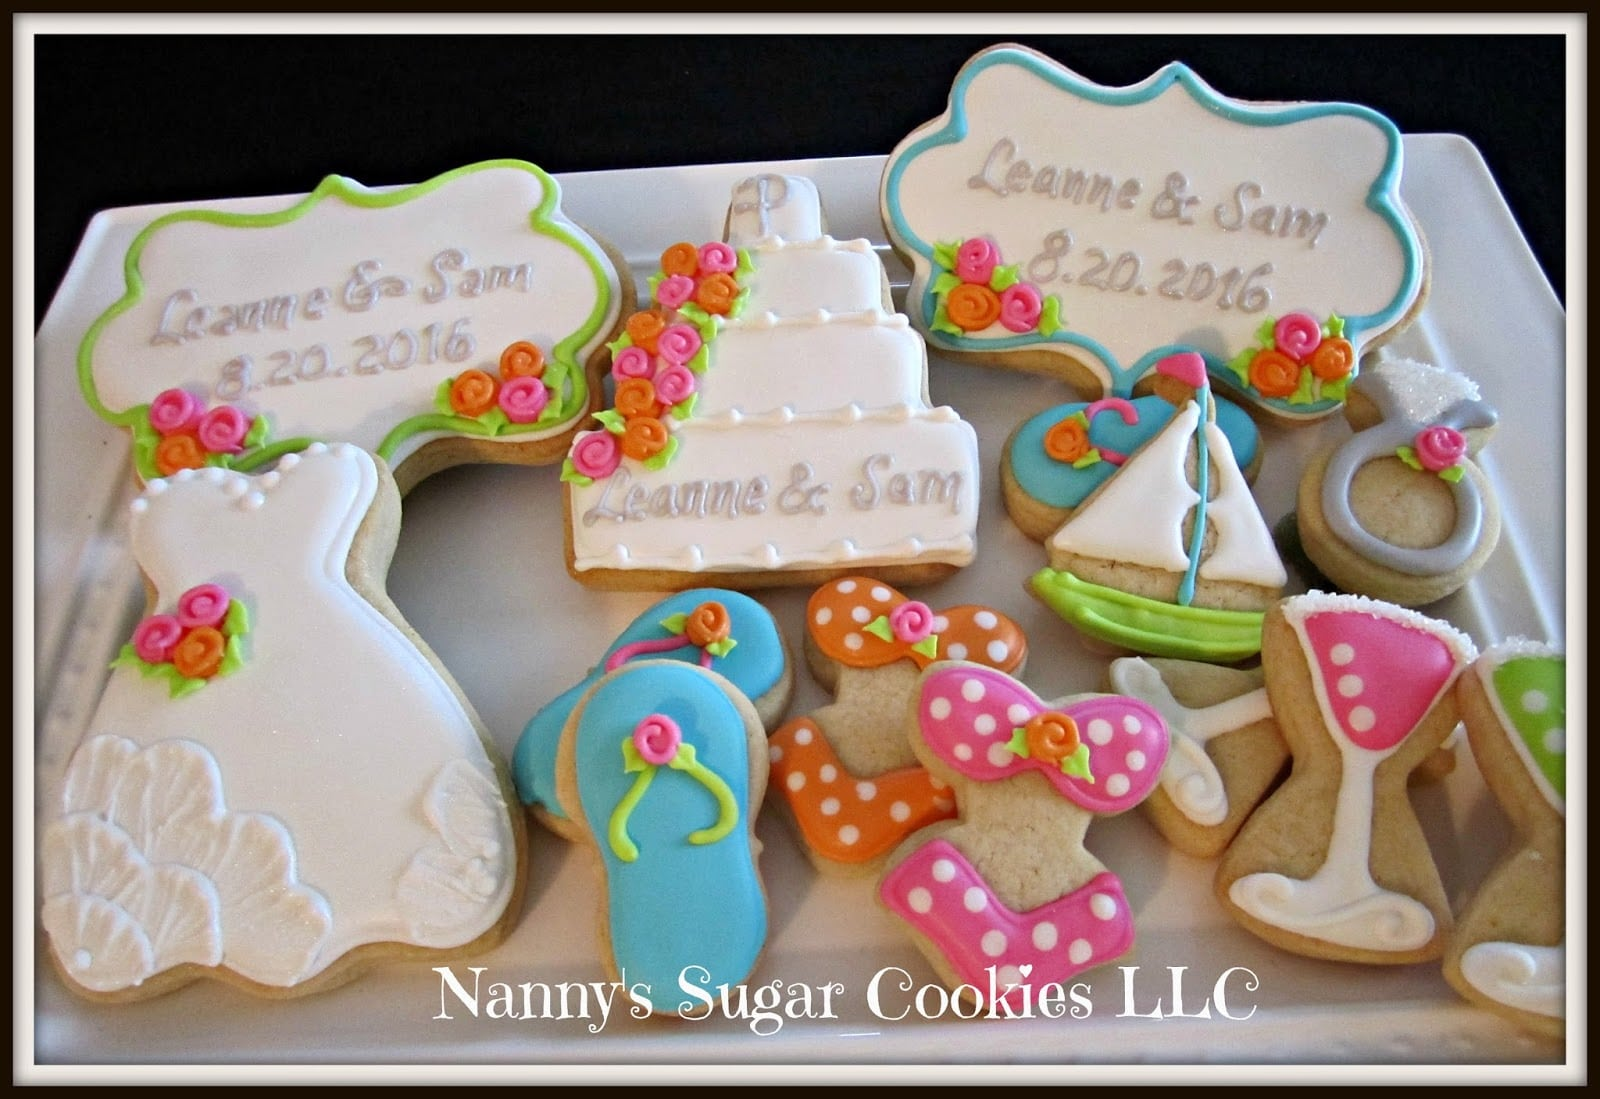 Nanny's Sugar Cookies Llc  Celebrating The  Last Sail Before The